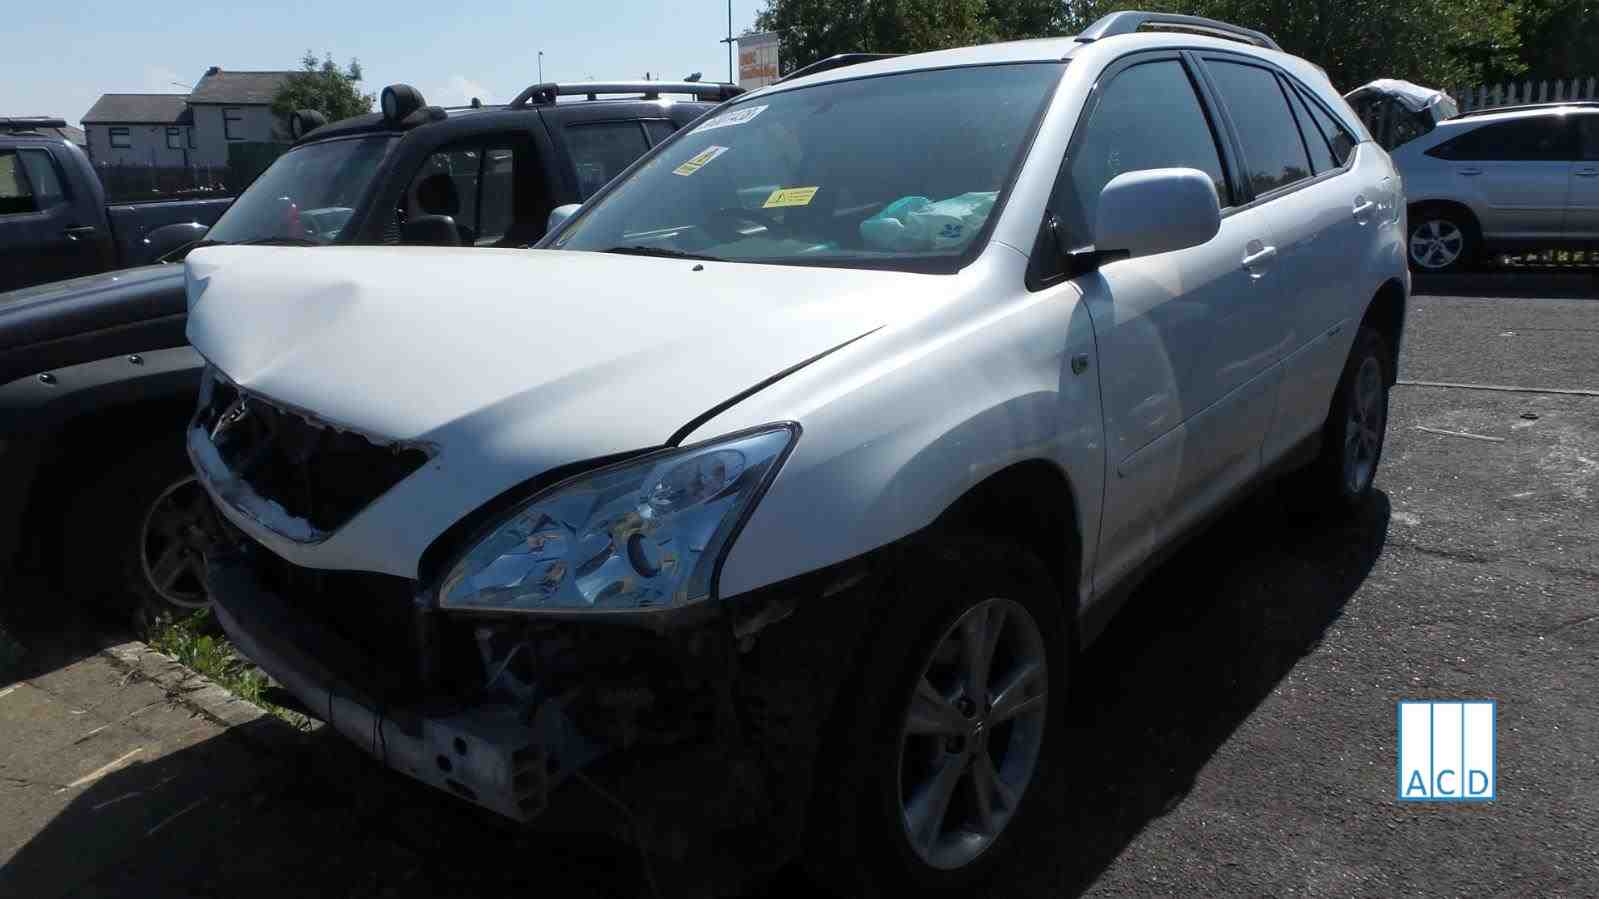 Lexus RX400 H SE 3.3L Petrol Hybrid Variable Speed Automatic 2007 #2541